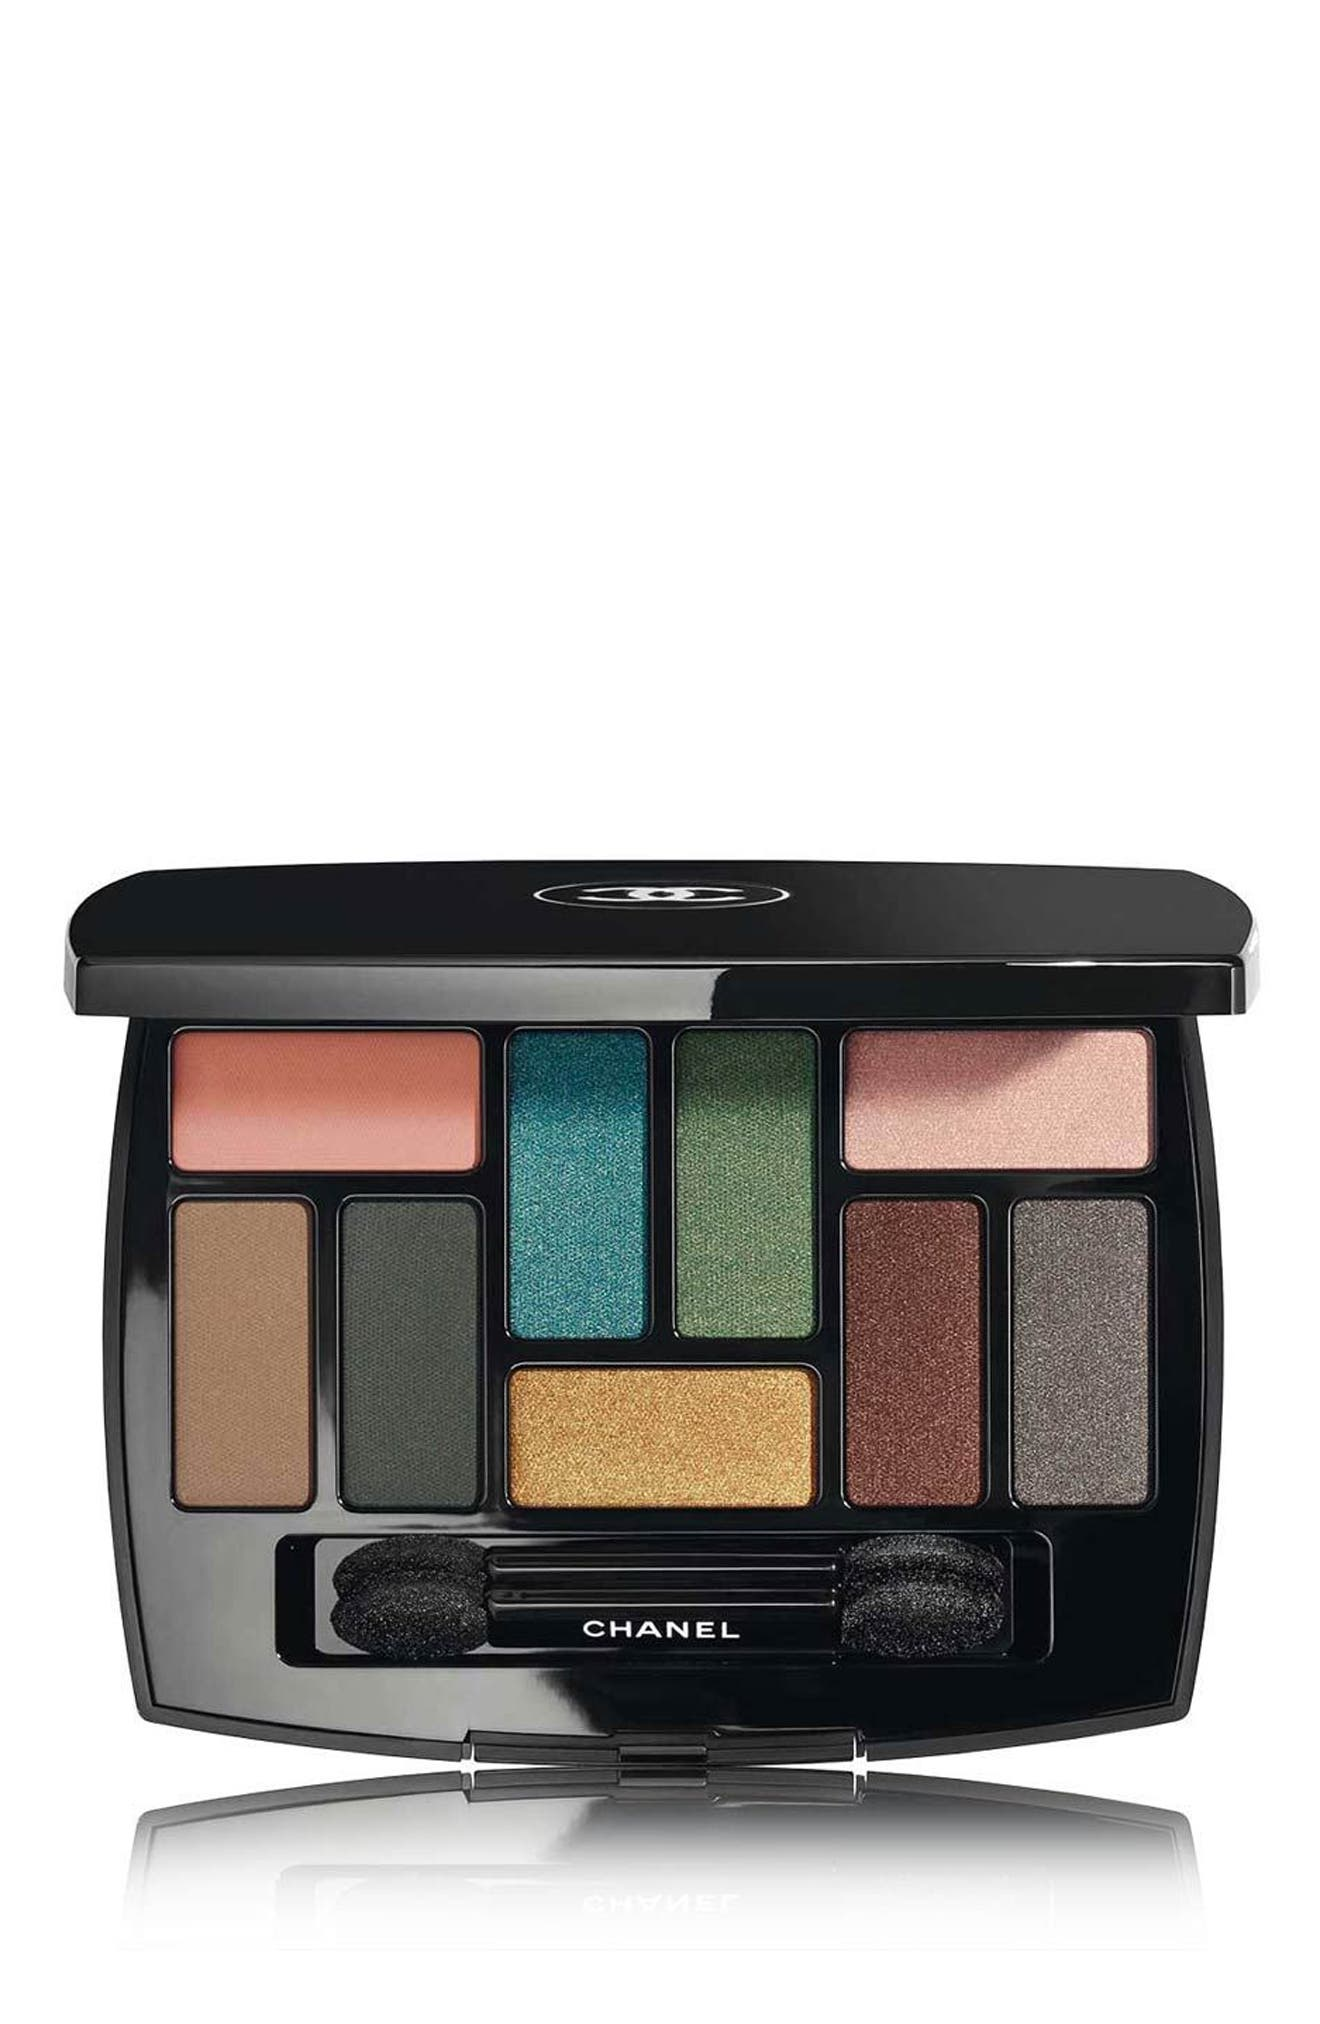 EDITION No. 1 AFFRESCO LES 9 OMBRES<br />Multi-Effects Eyeshadow Palette,                             Main thumbnail 1, color,                             No Color